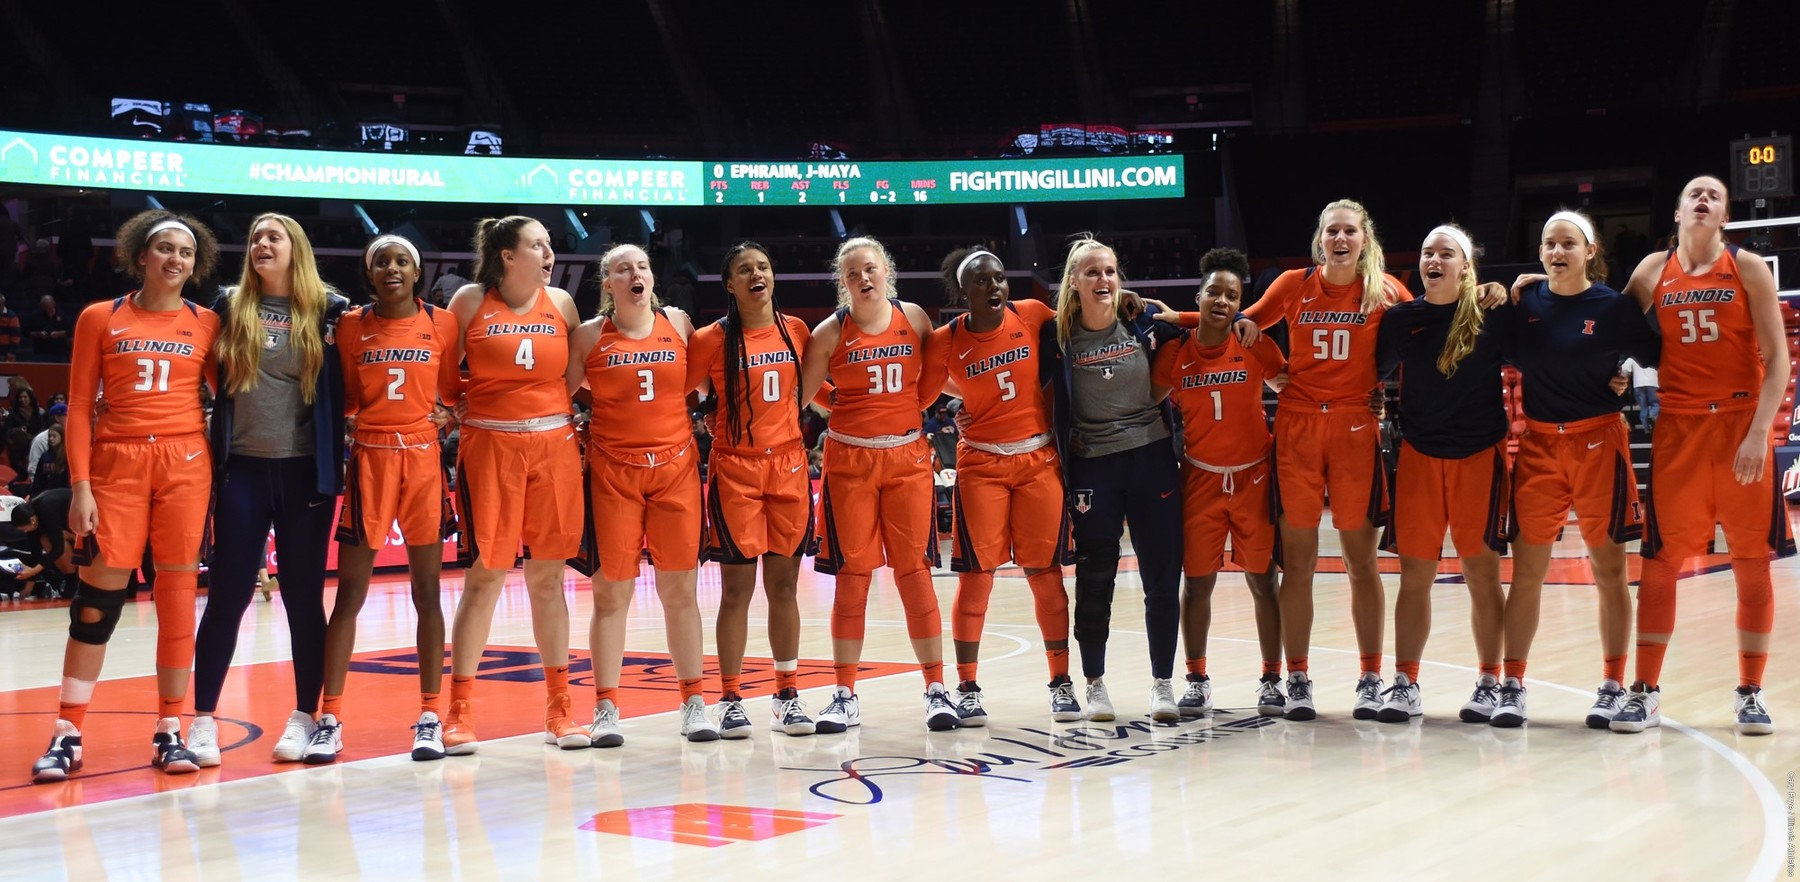 Women's Basketball team with coaches, all arm-in-arm